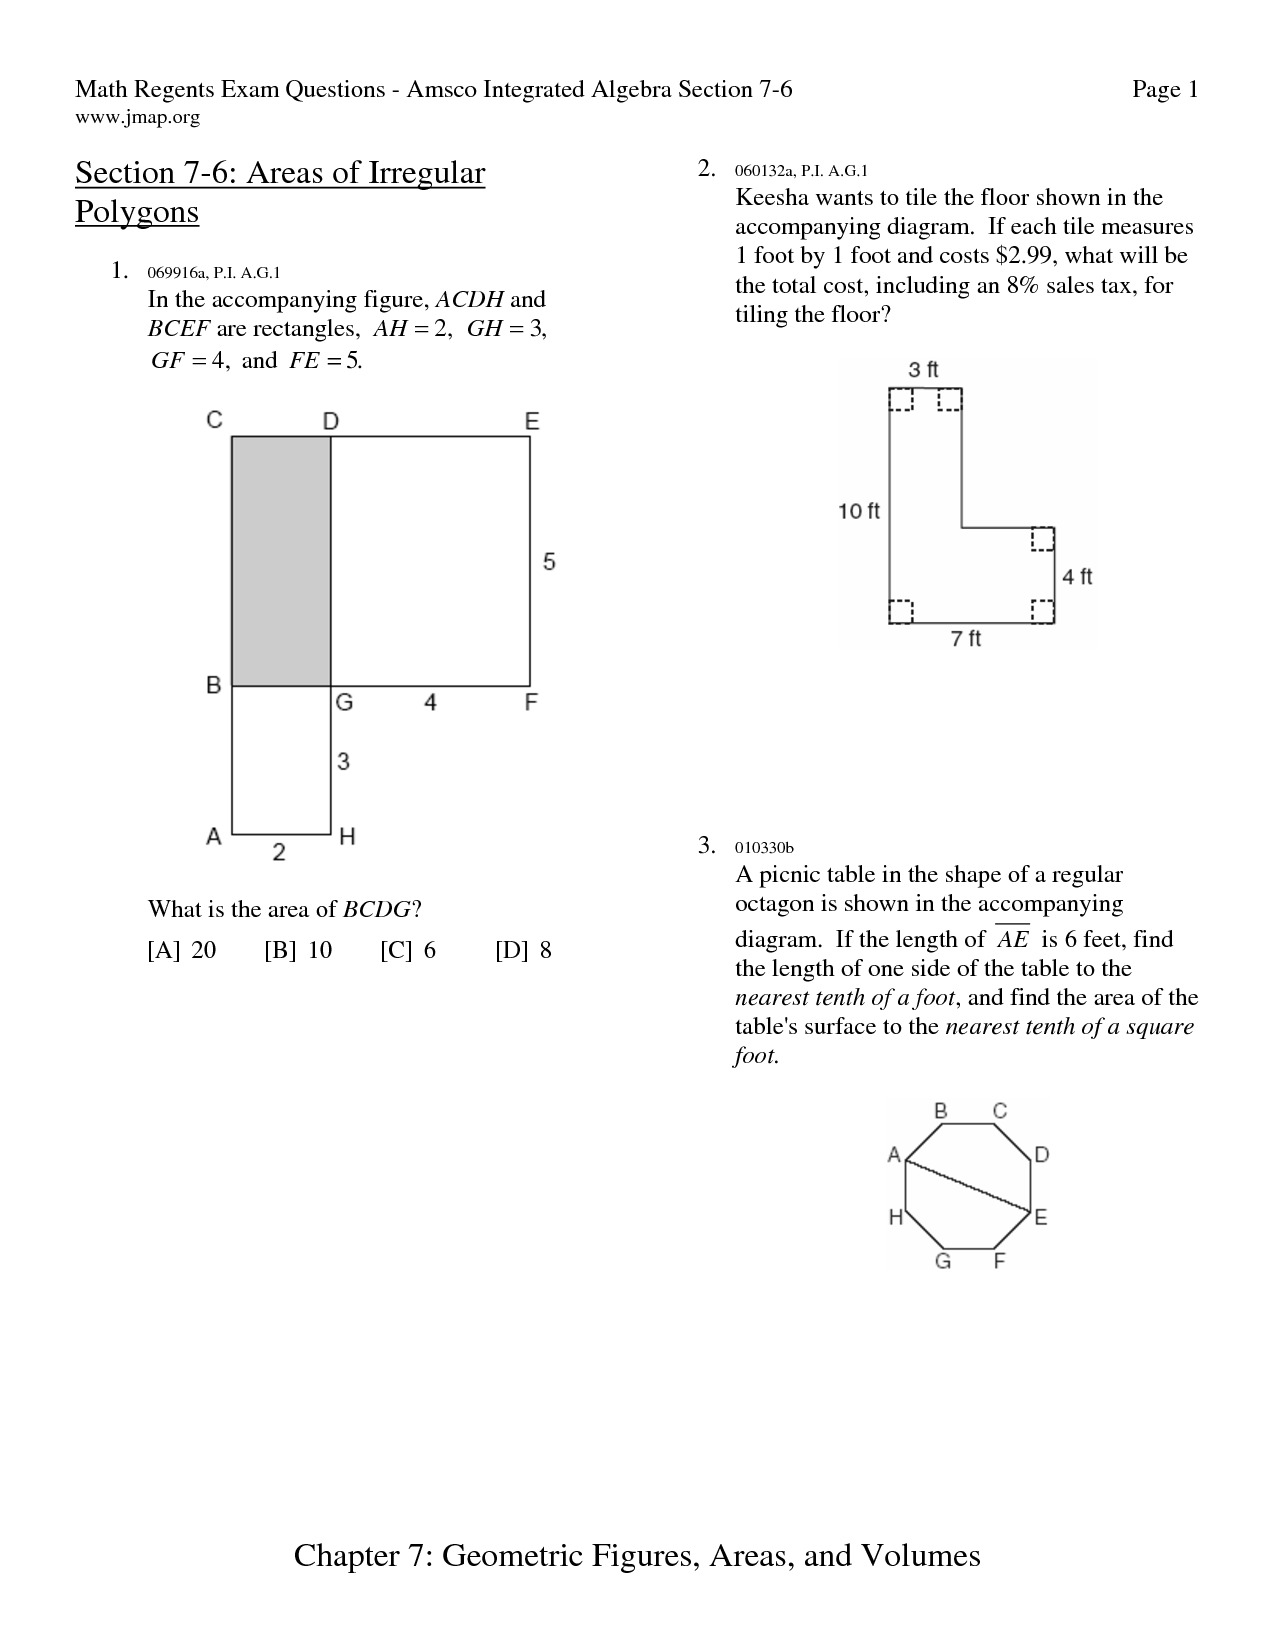 worksheet Finding The Area Of Polygons Worksheet area of polygons worksheets free scope work template pinterest math and algebra